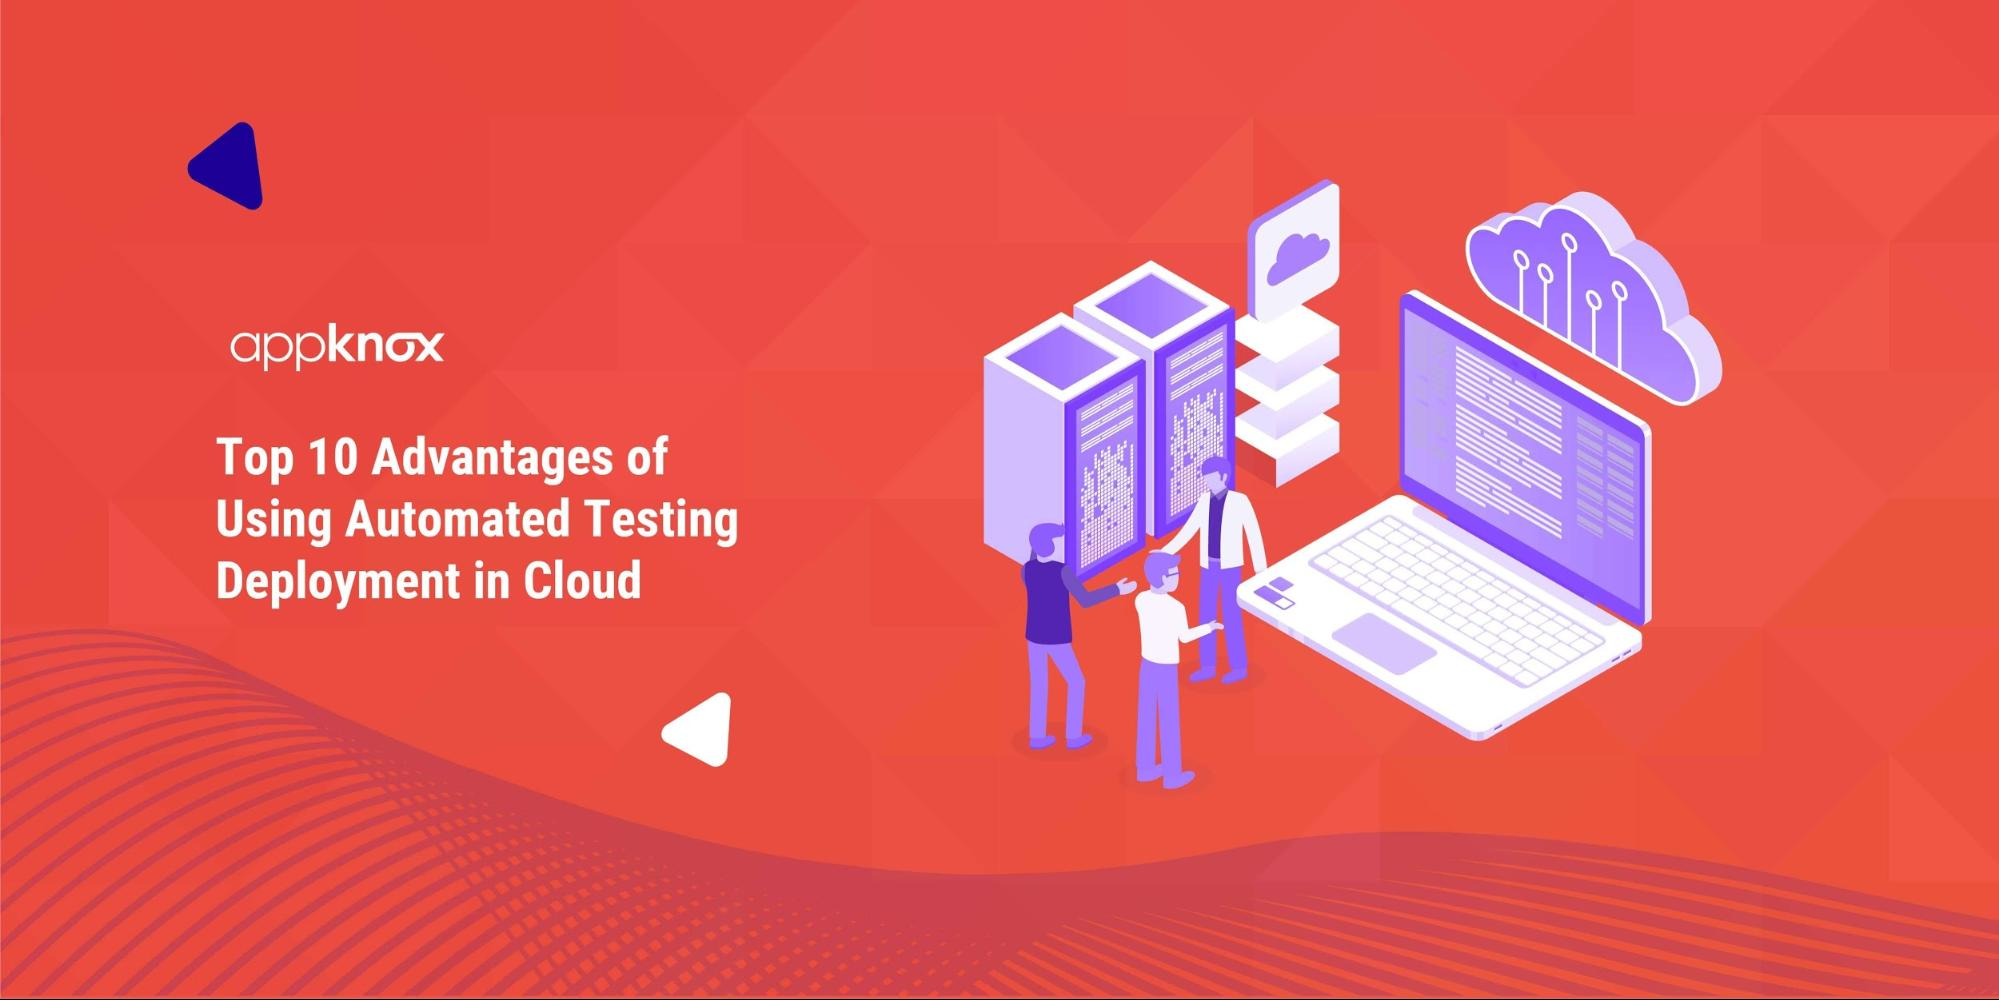 Top 10 Advantages of Using Automated Testing Deployment in Cloud